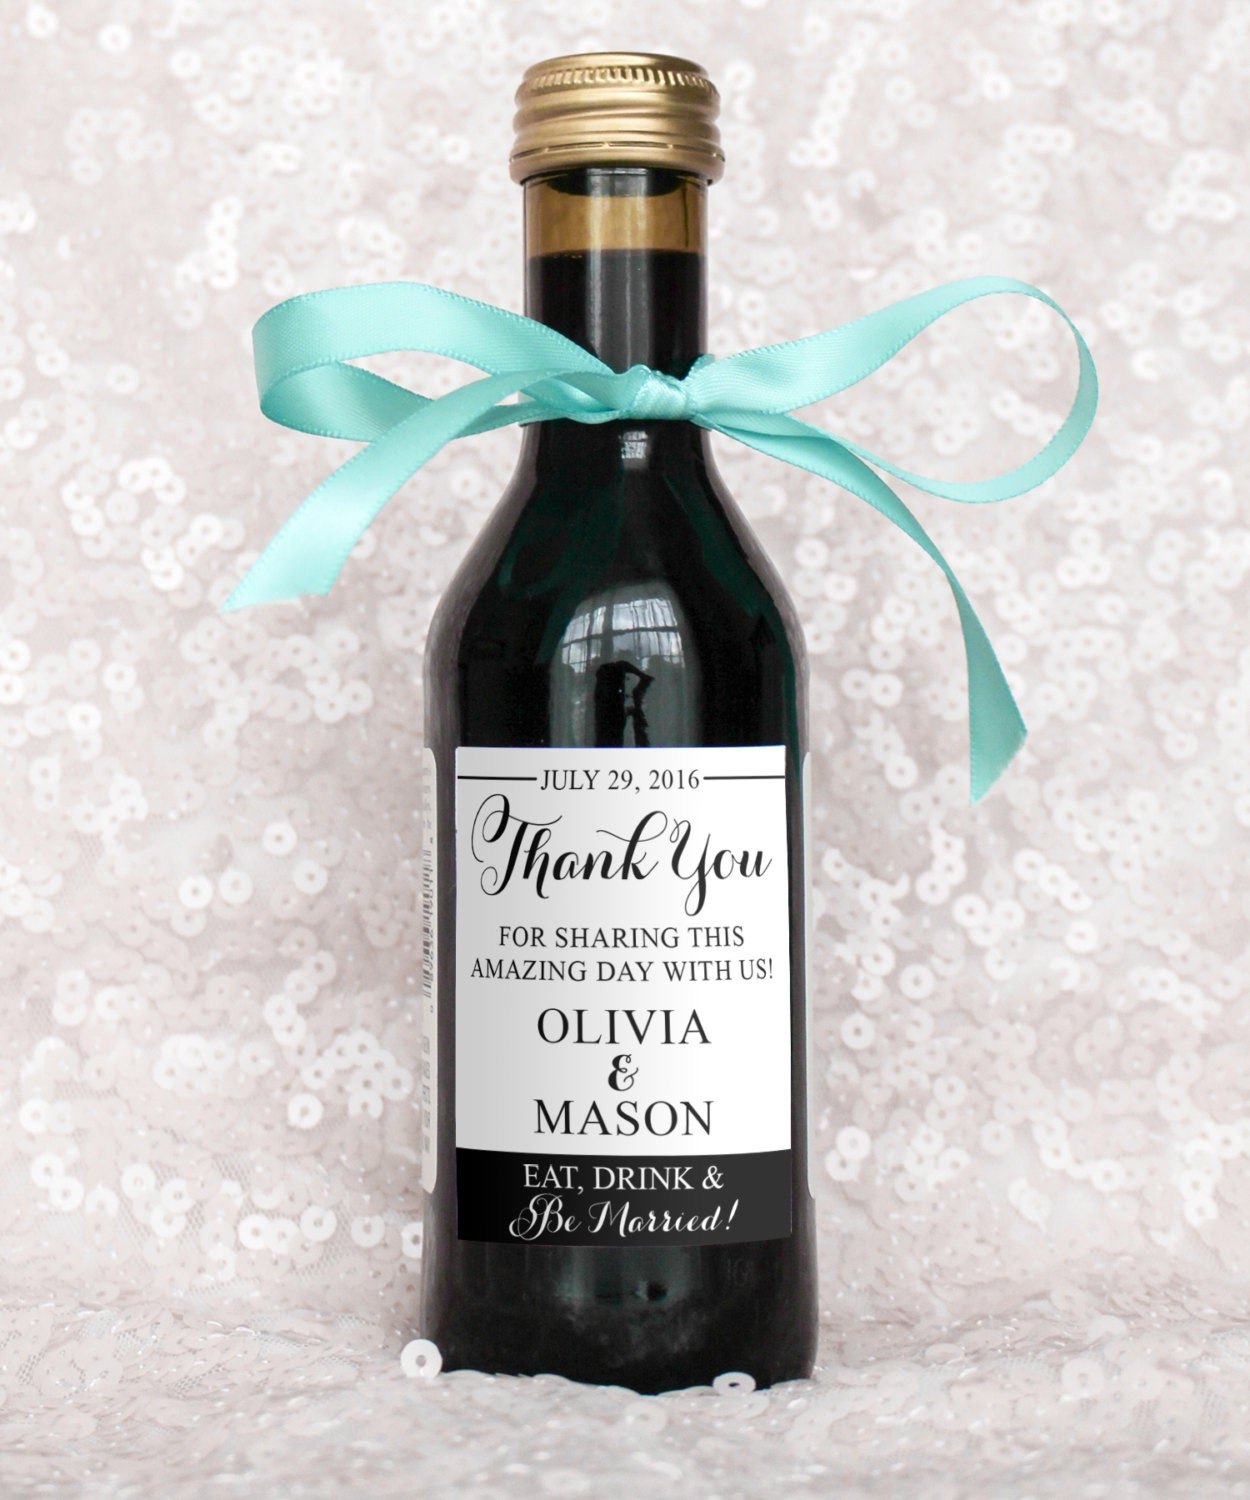 Fantastic Mini Wine Bottle Wedding Favors Image Collection - The ...